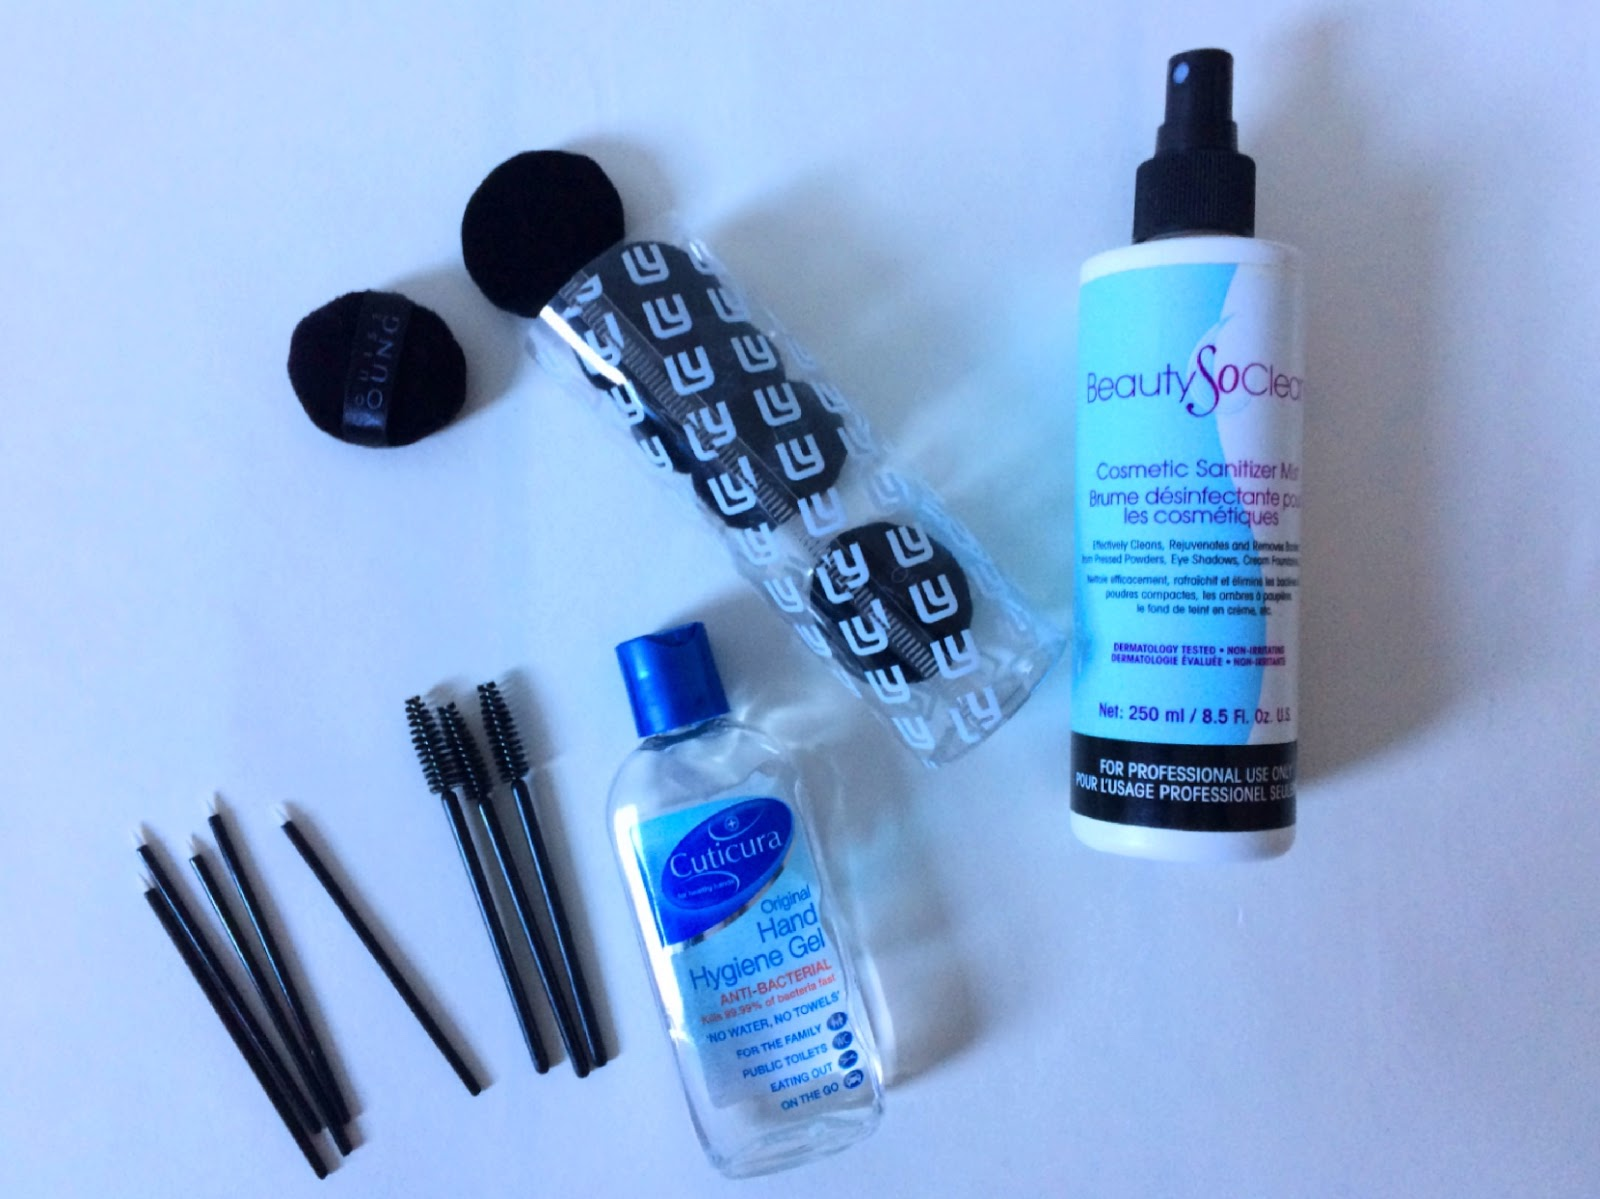 Make-up kit hygiene essentials